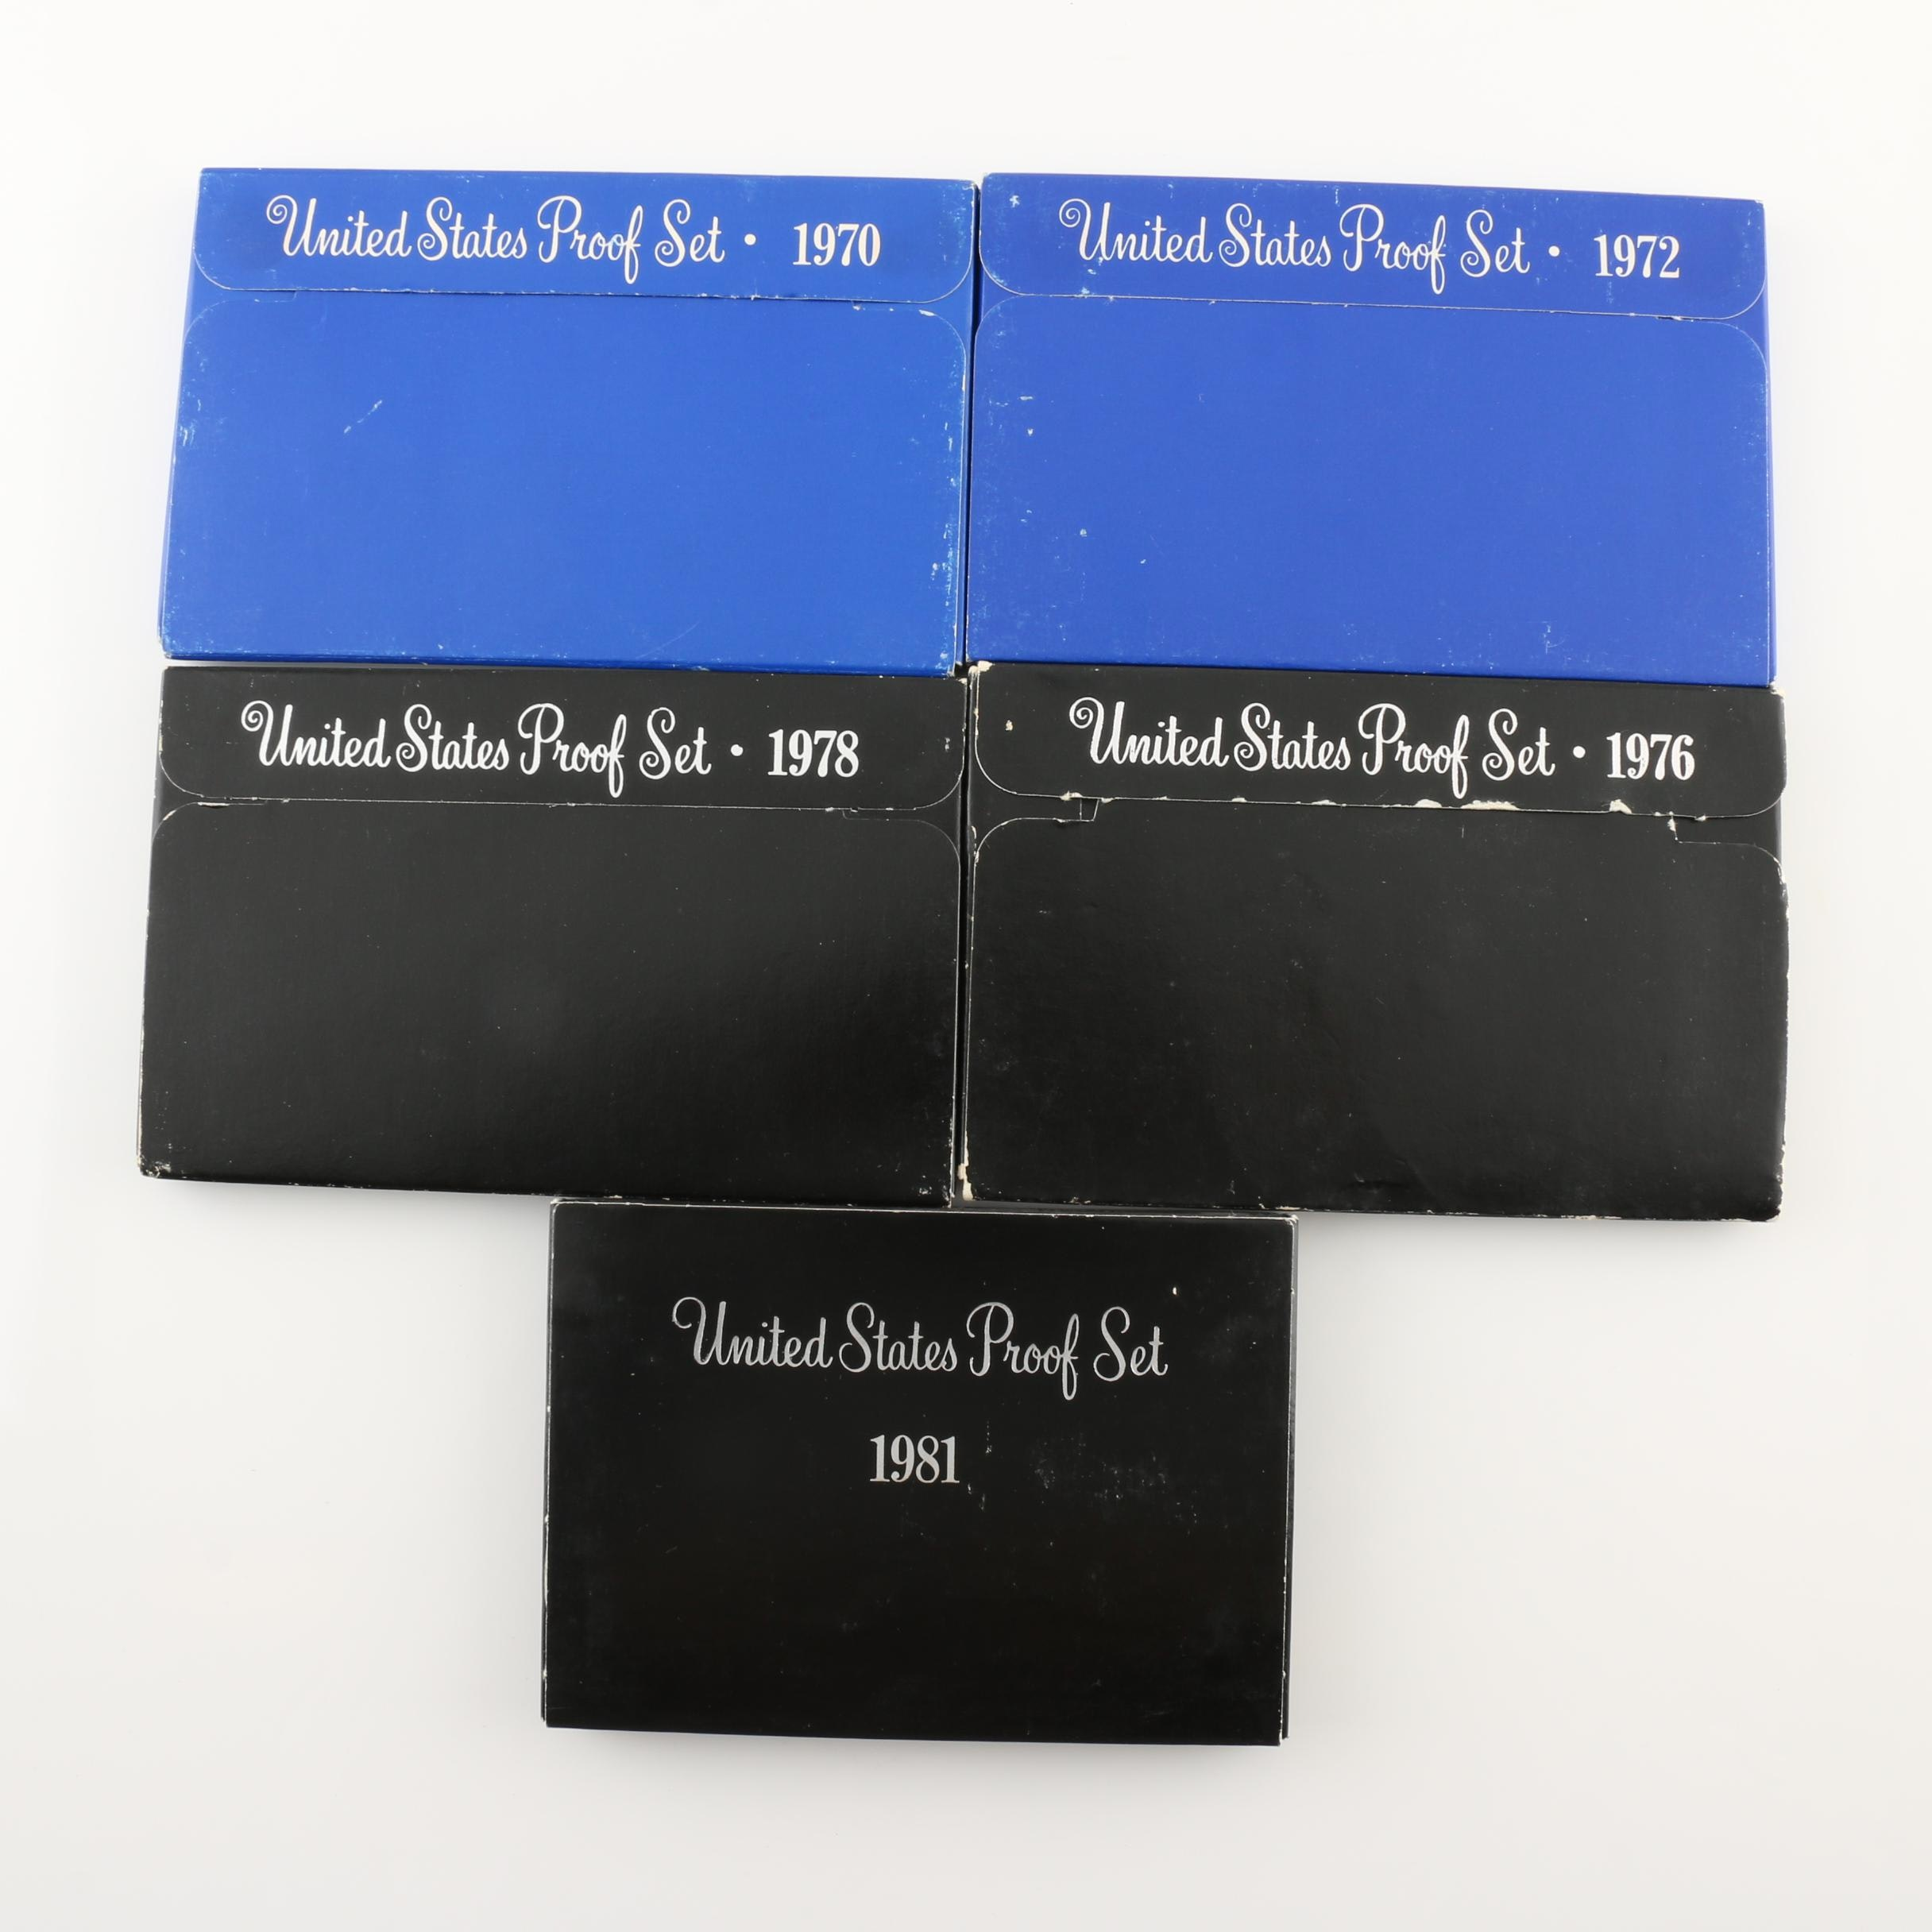 Group of Five U.S. Mint Proof Sets Including 1970, 1972, 1976, 1978, and 1981